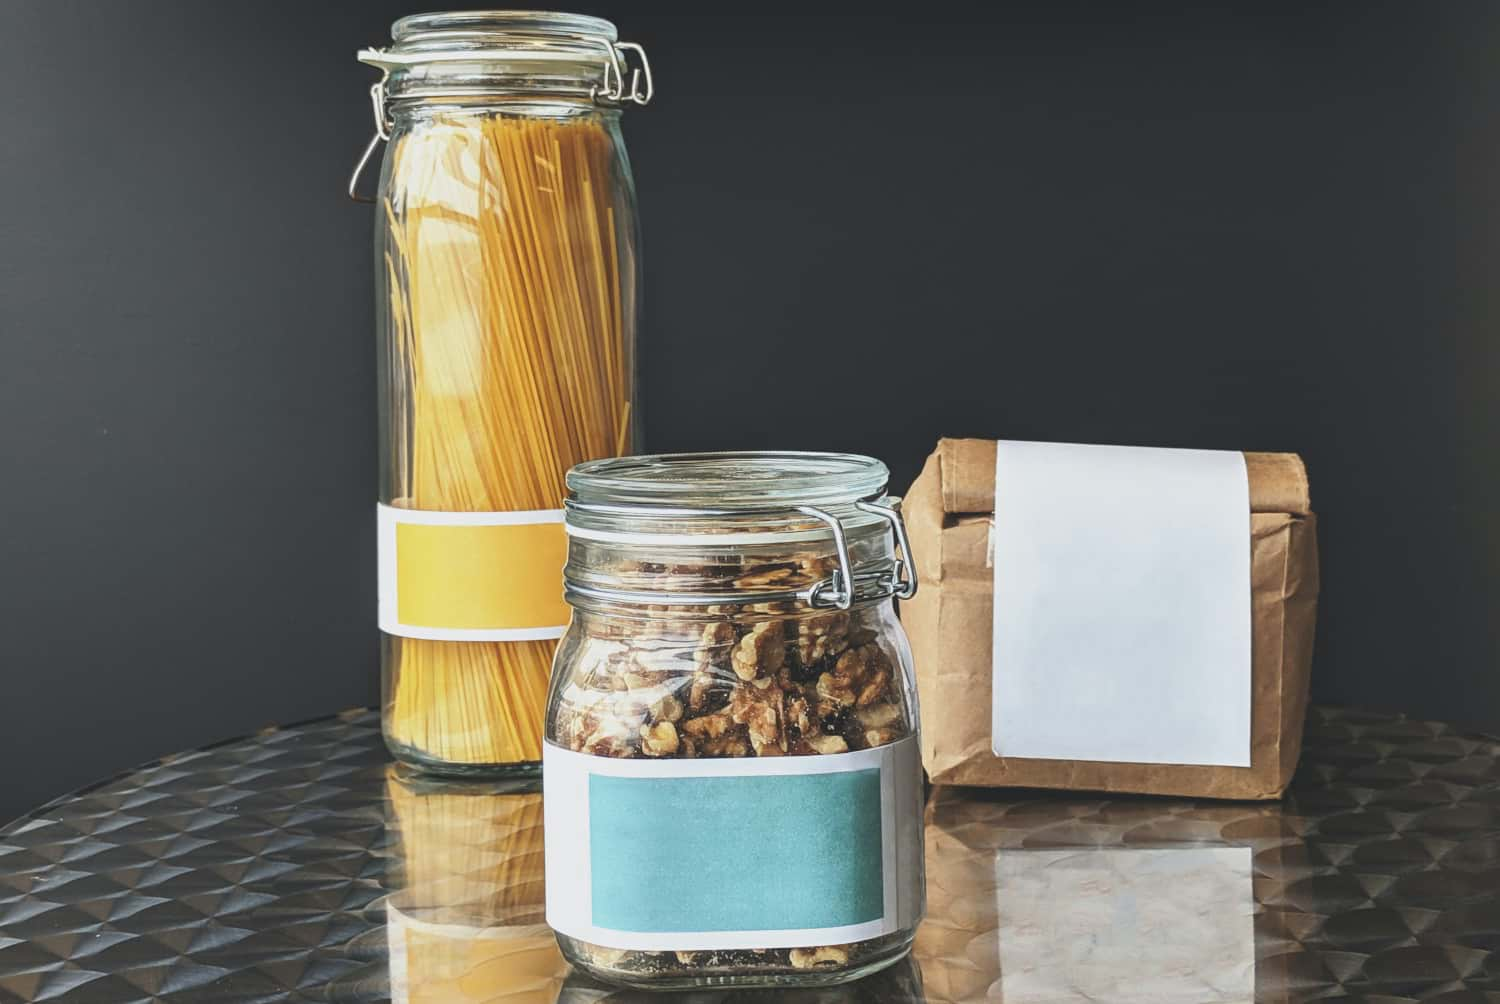 Sun & Swell distributes their organic food products in 100 percent compostable packaging and reusable jars, one of the first companies to do this on a large scale.